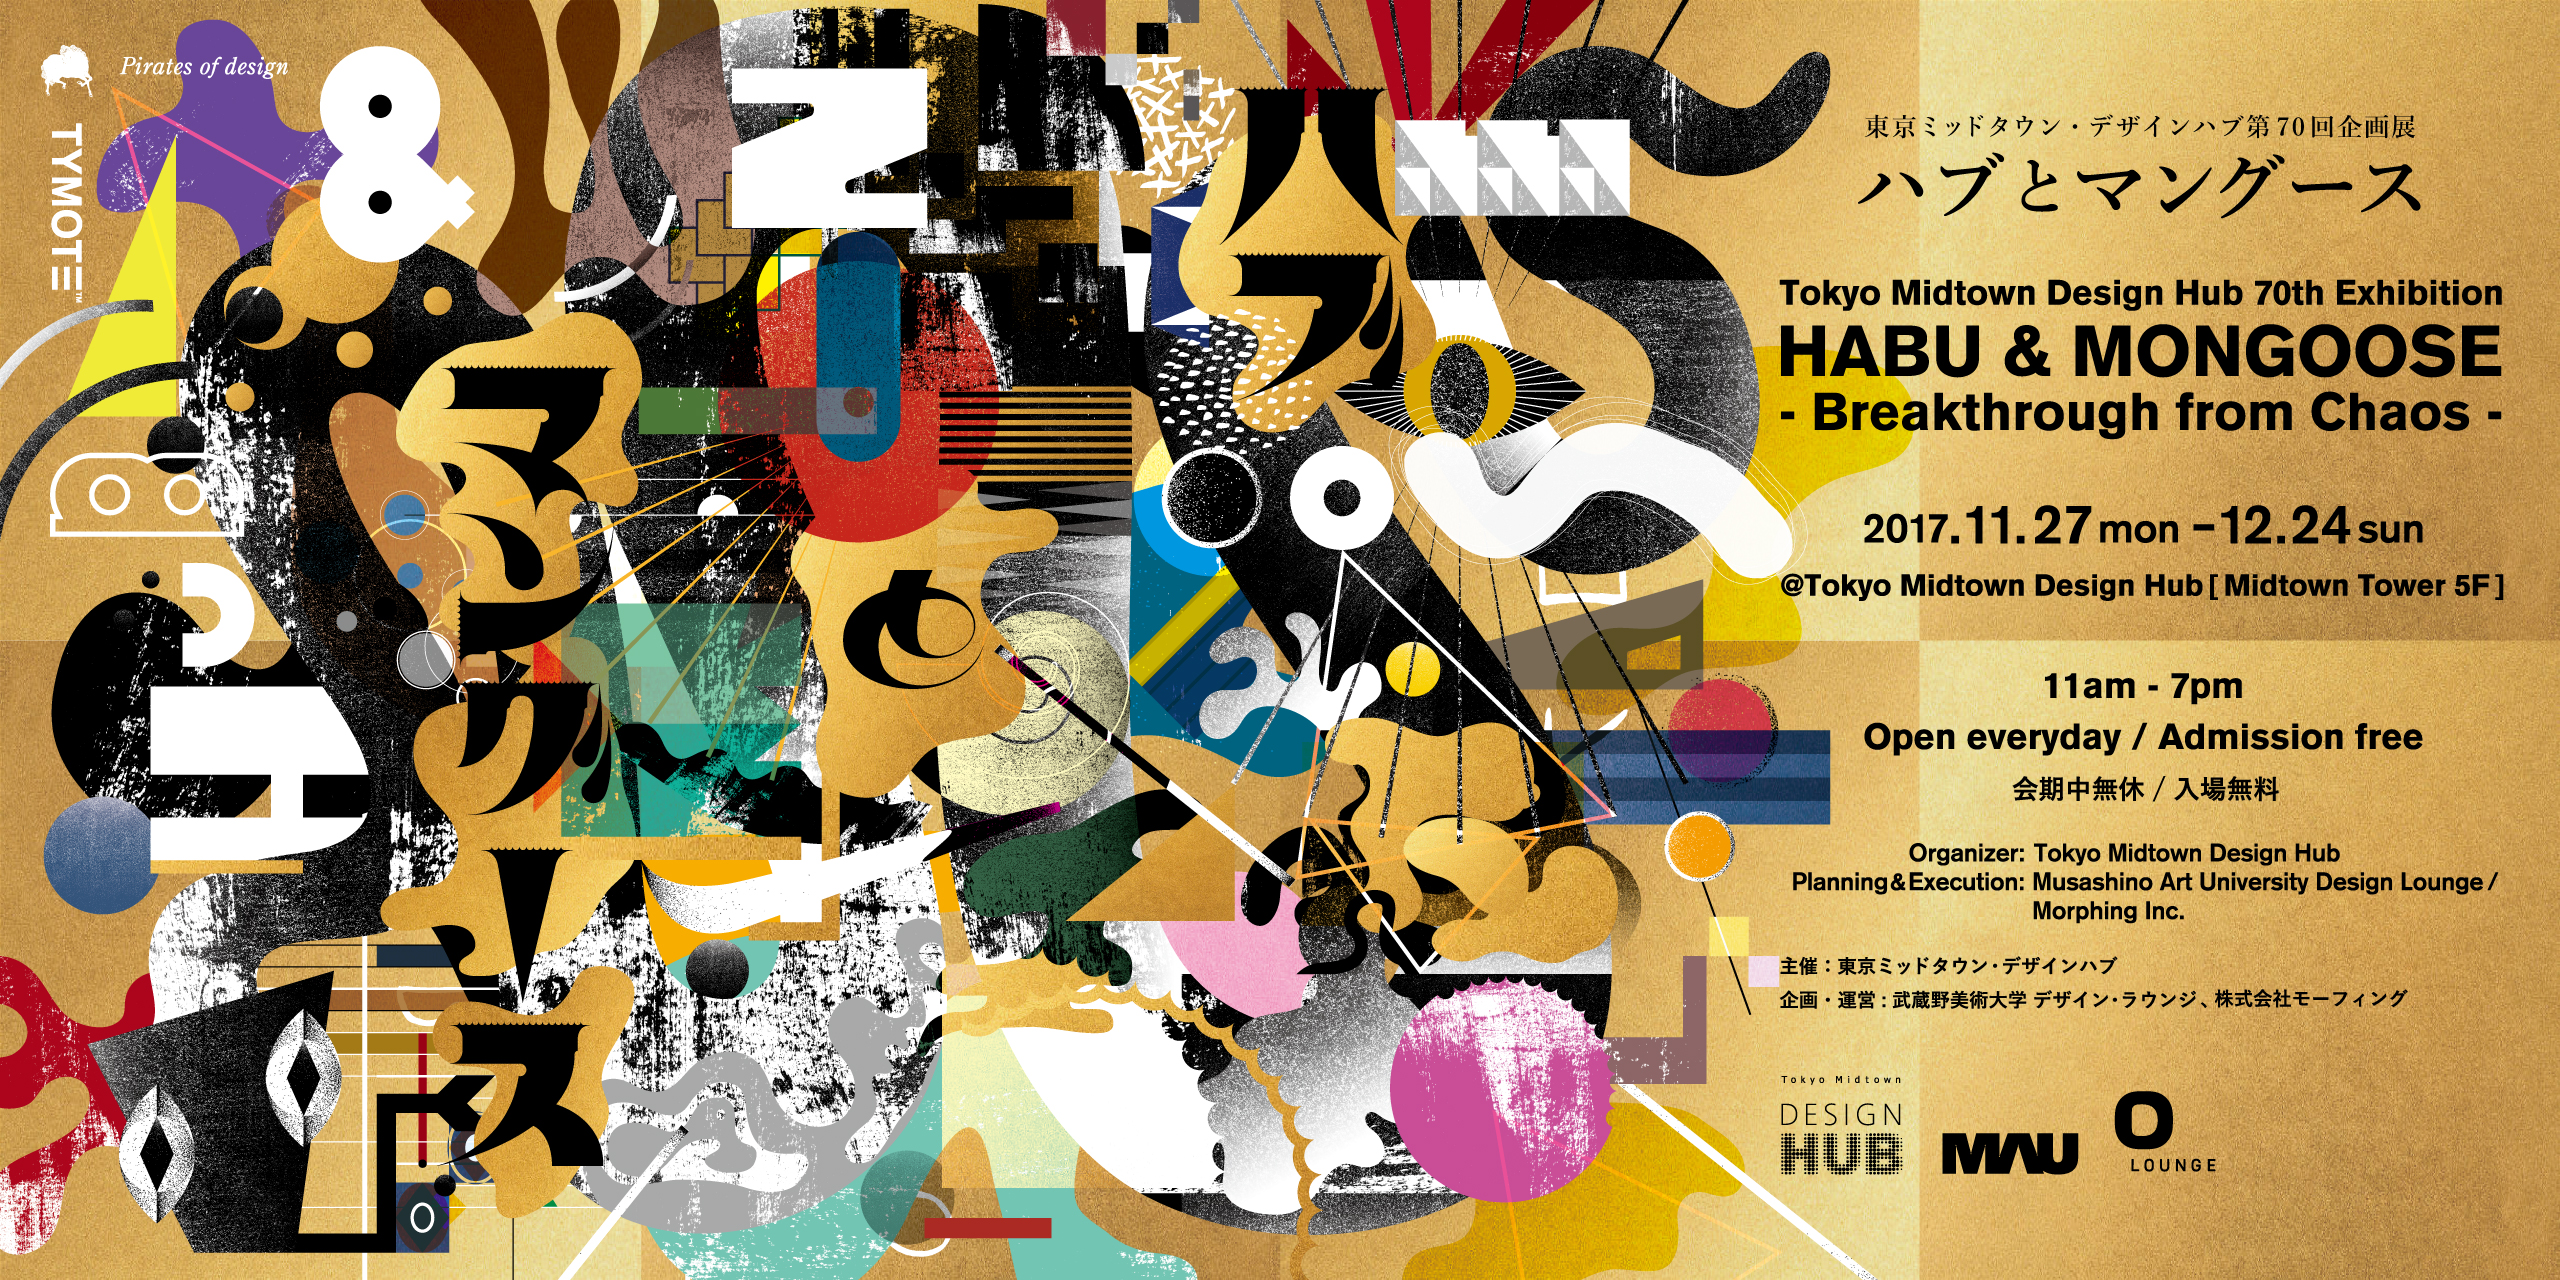 HABU & MONGOOSE -Breakthrough from Chaos-